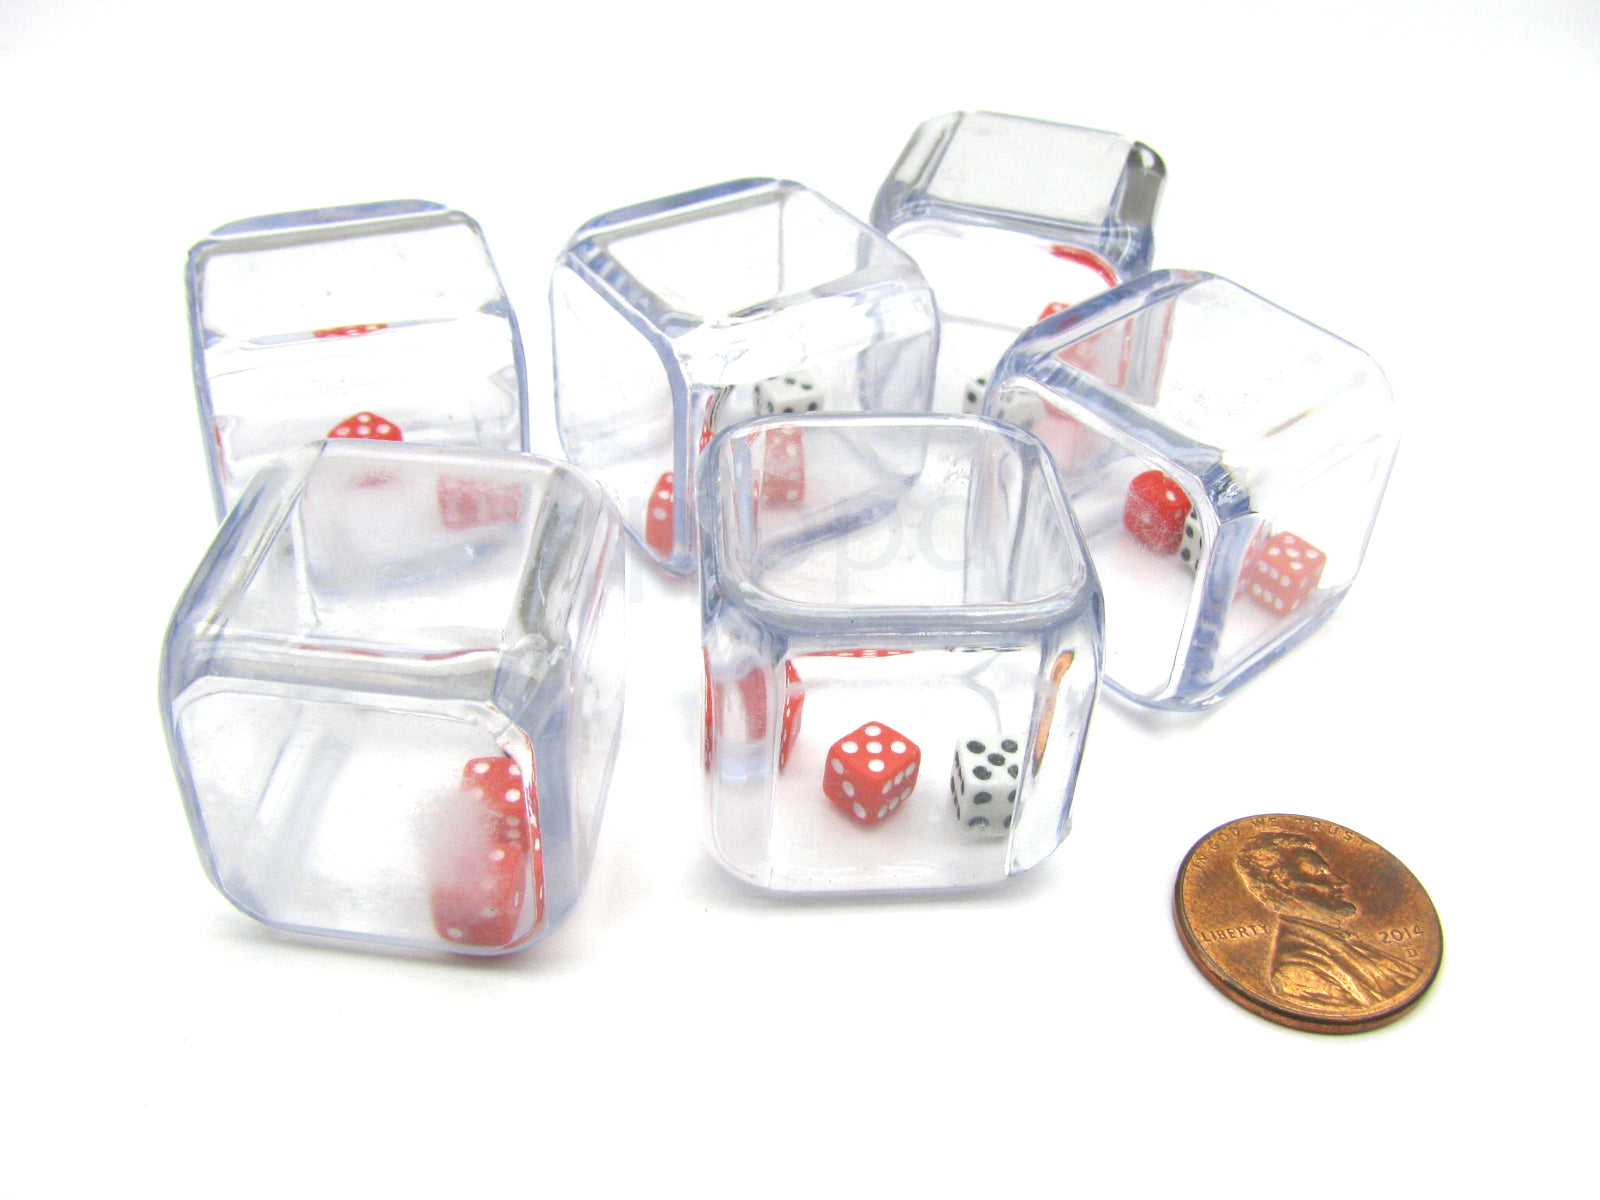 Pack of 6 '3 In a Cube' Dice - 2 x 5mm Red + 1 x 5mm White Dice Inside 25mm Cube